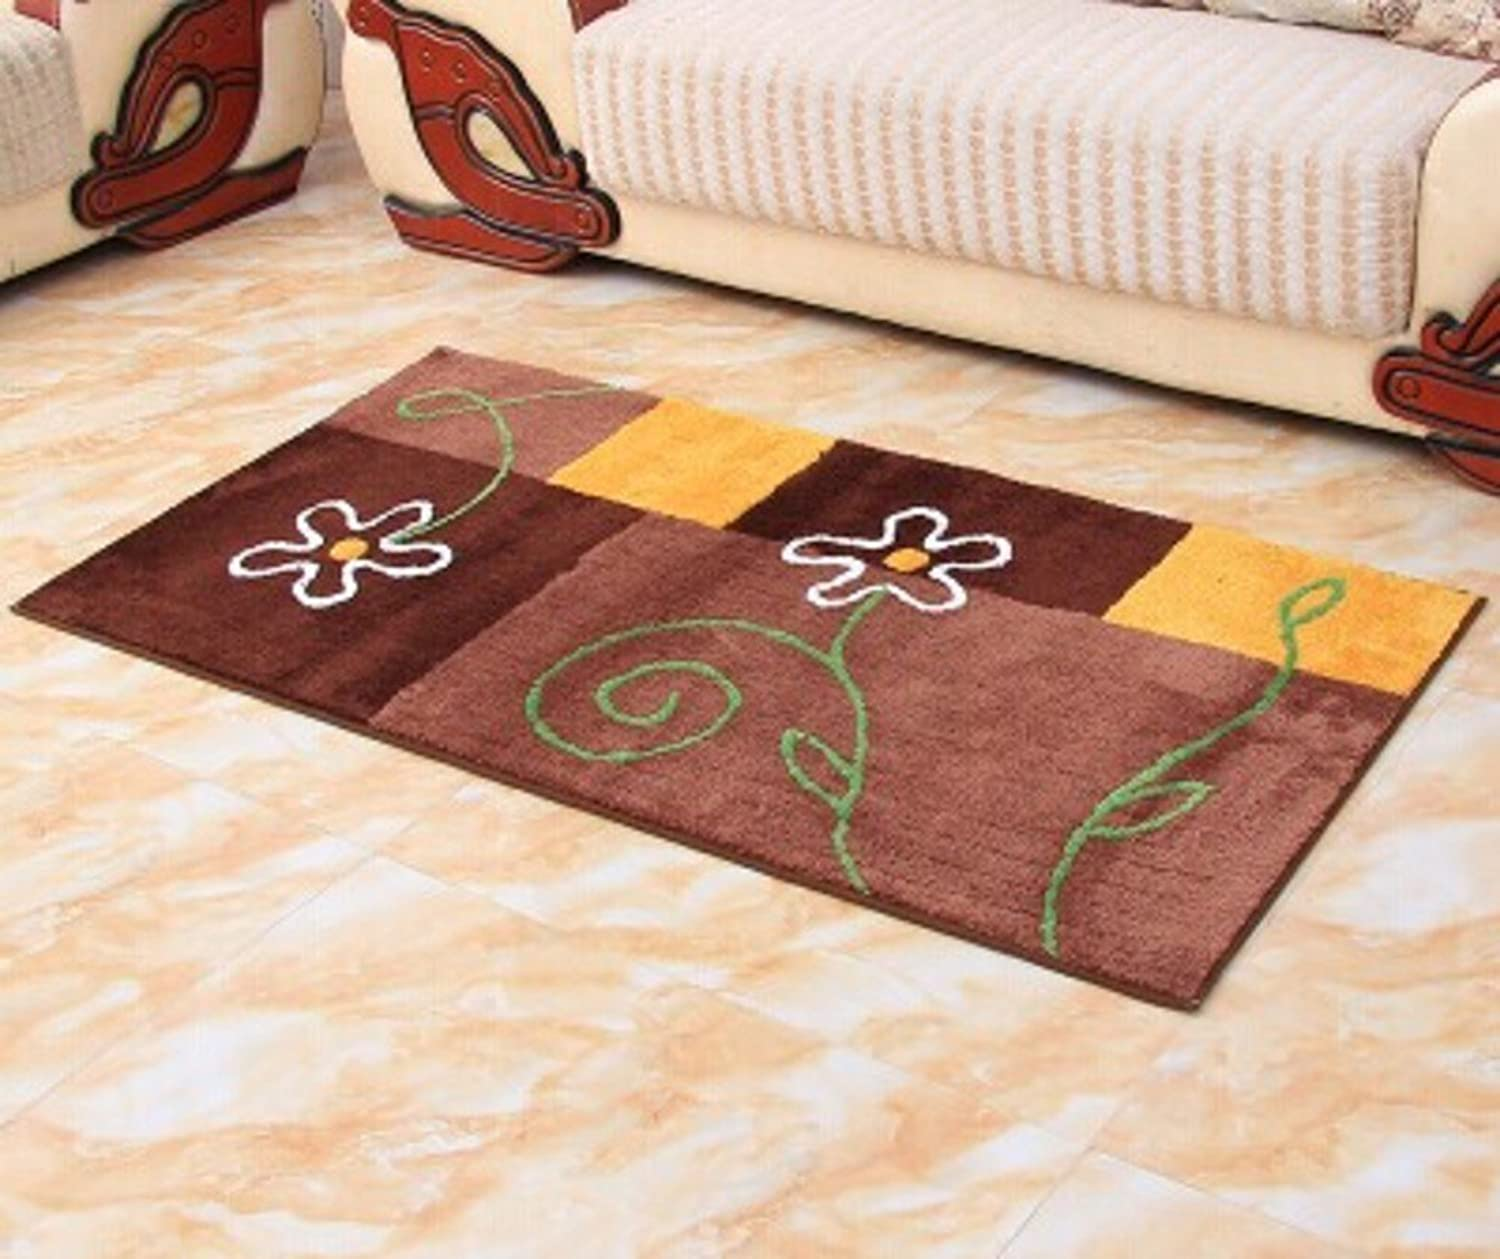 Living Room Floor Mats in The Hall Dirt-Resistant Mats Kitchen Door Mats Stain-Resistant Mats-B 80x130cm(31x51inch)